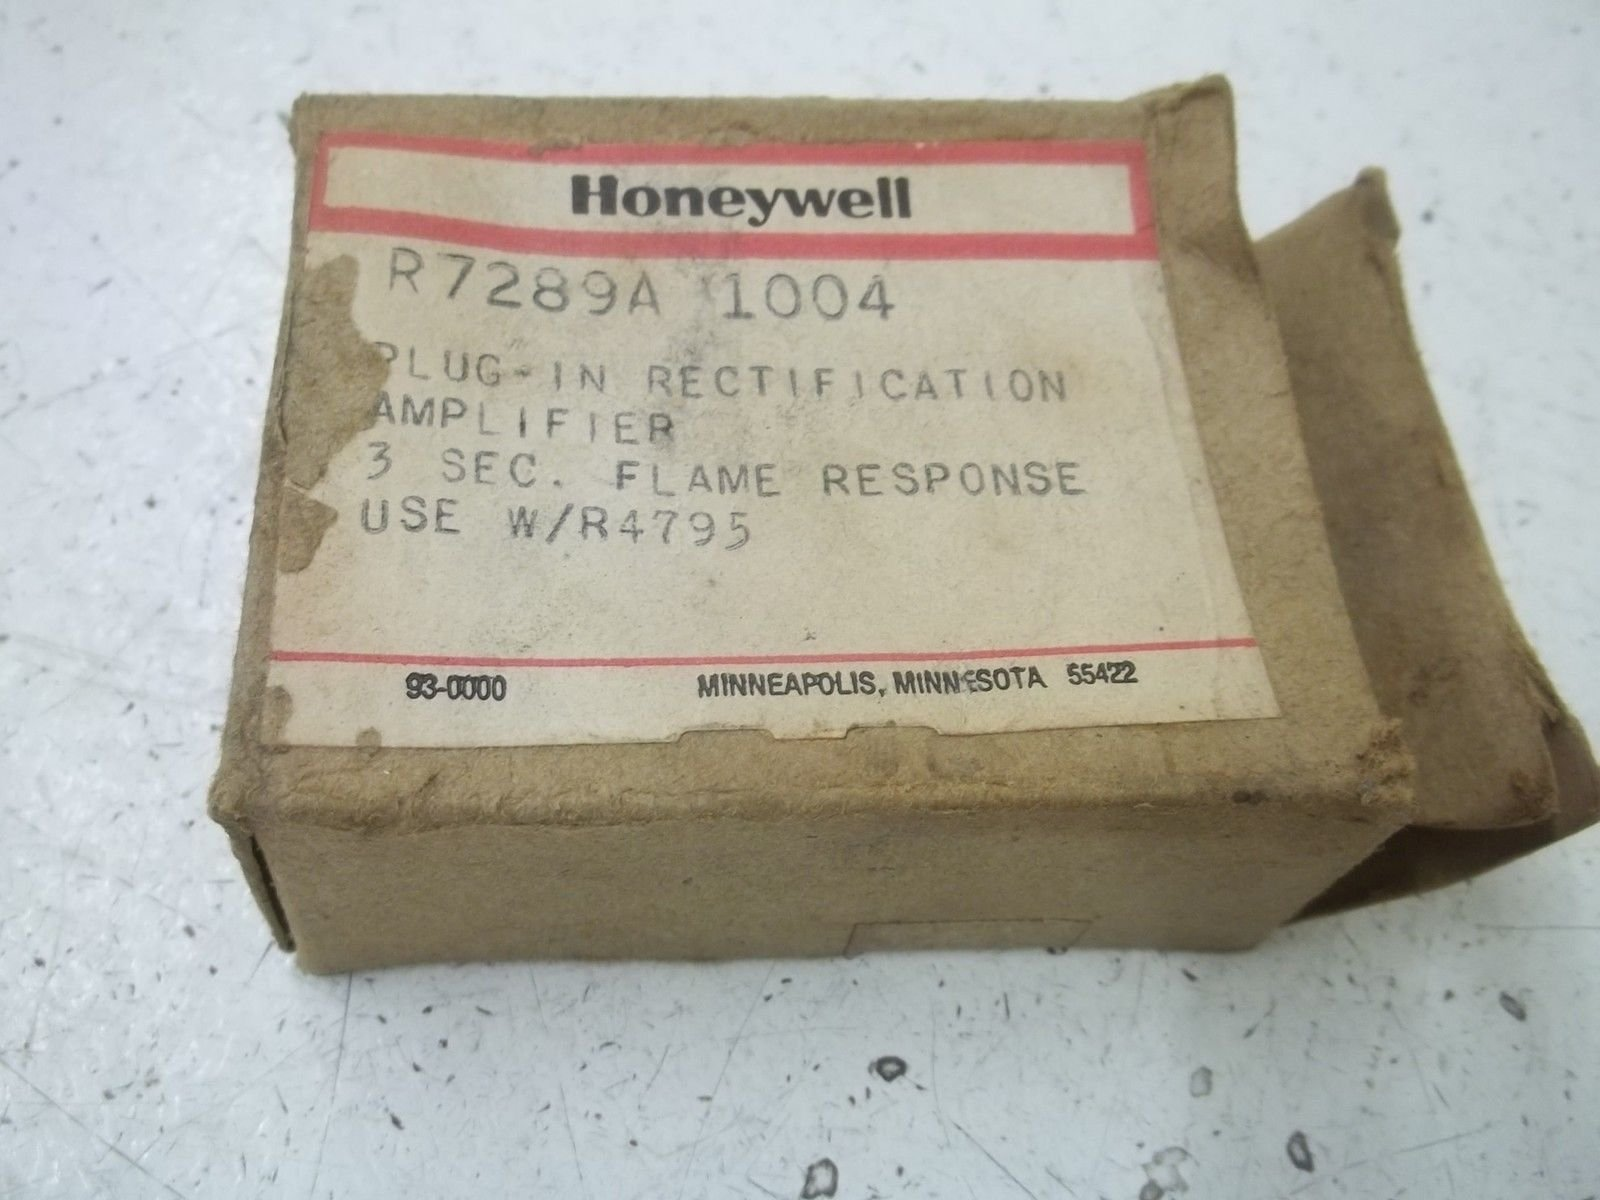 Honeywell R7289A1004 Flame Amplifier, Rectification, FFRT, 3.0 seconds for R4795